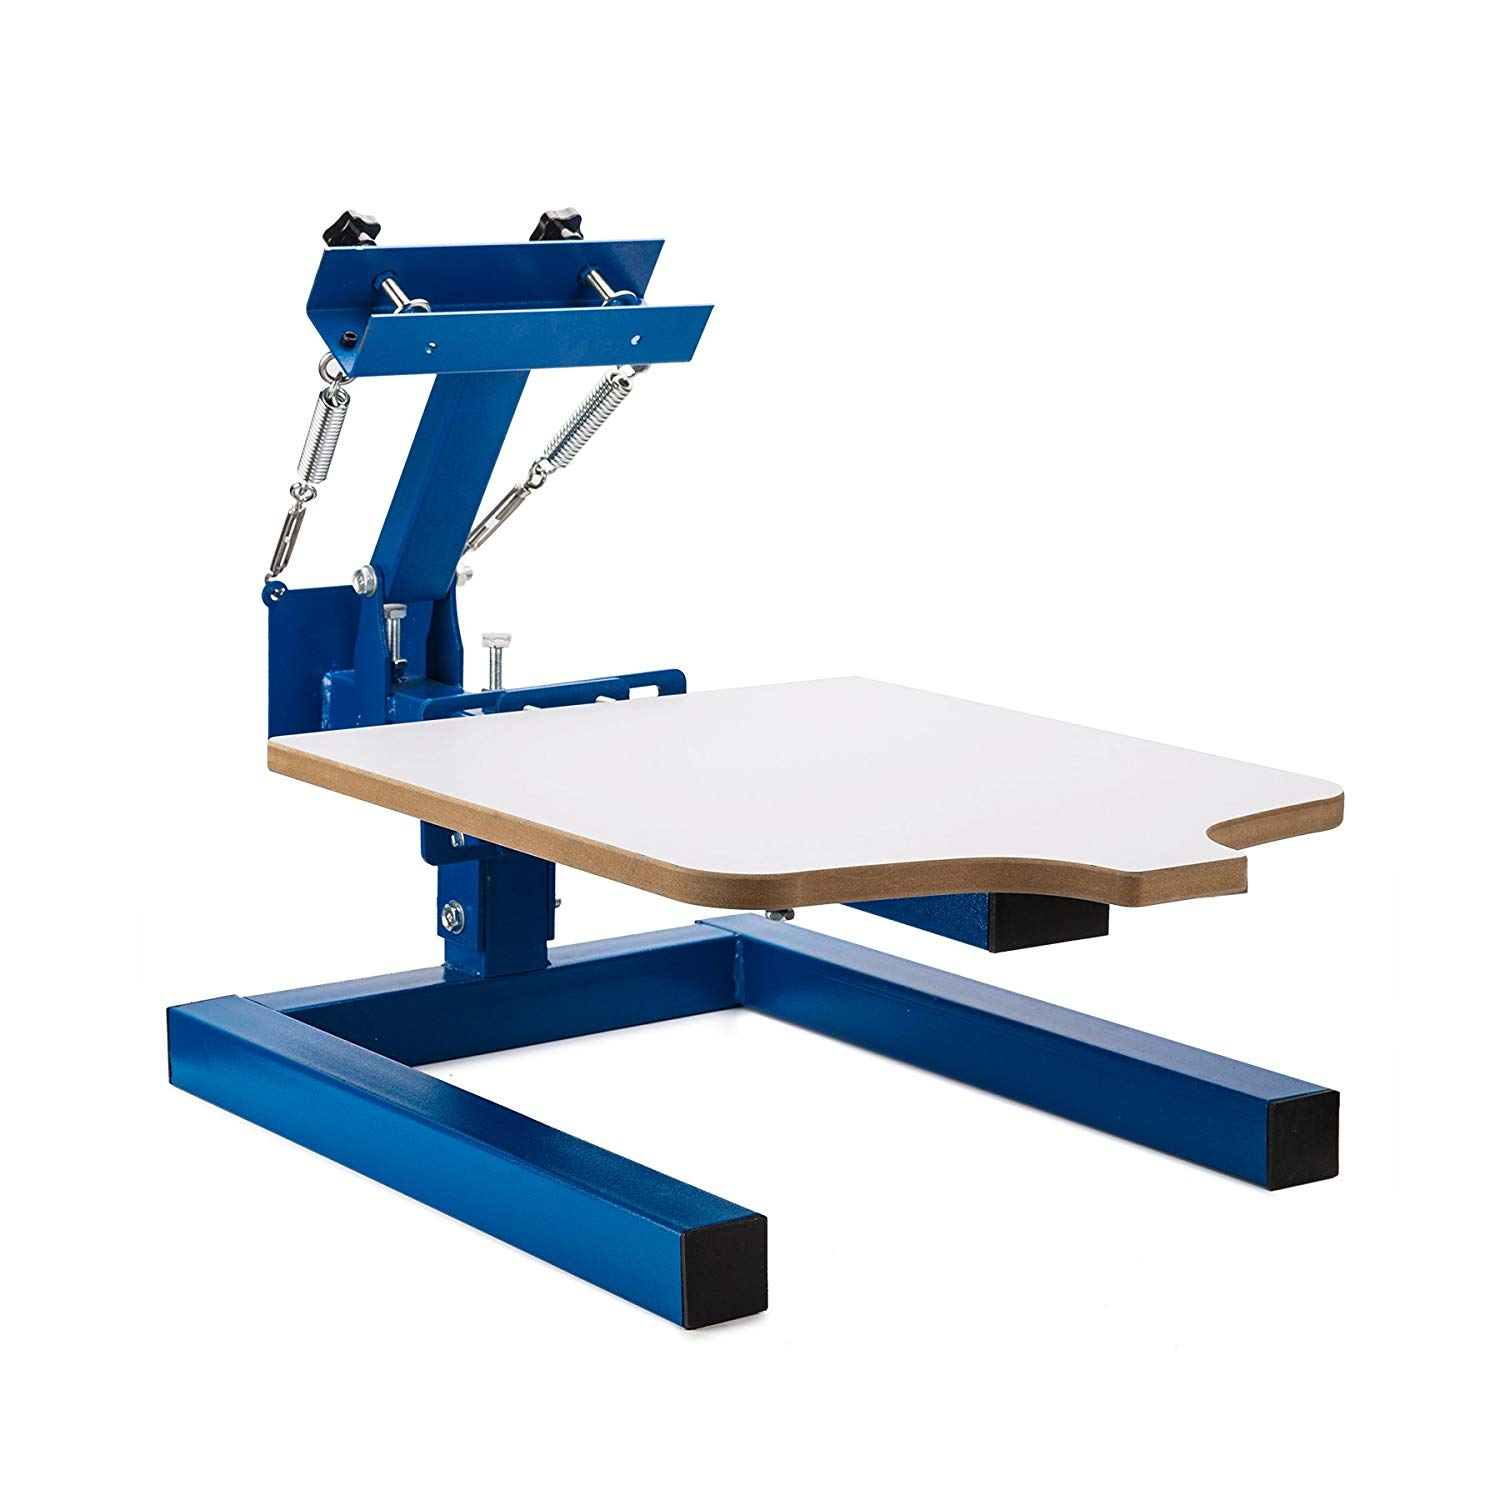 CO-Z Screen Printing Machine Silk Screen Printing Machine Screen Printing Press Removable Pallet Special Design (1 Color 1 Station)